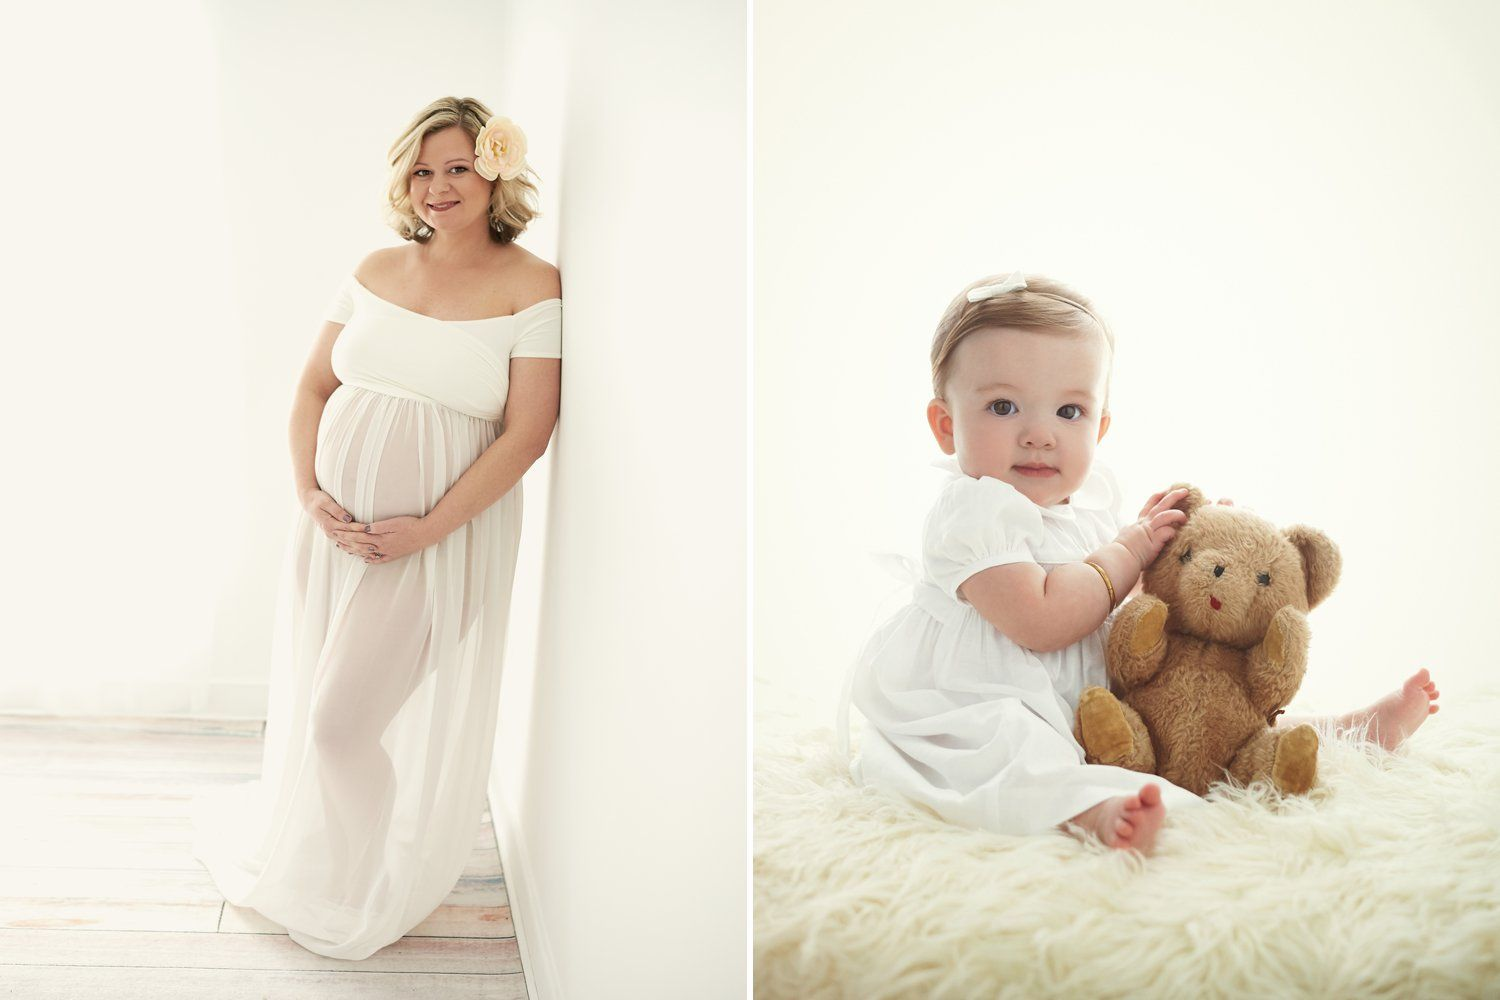 Maternity and baby session package